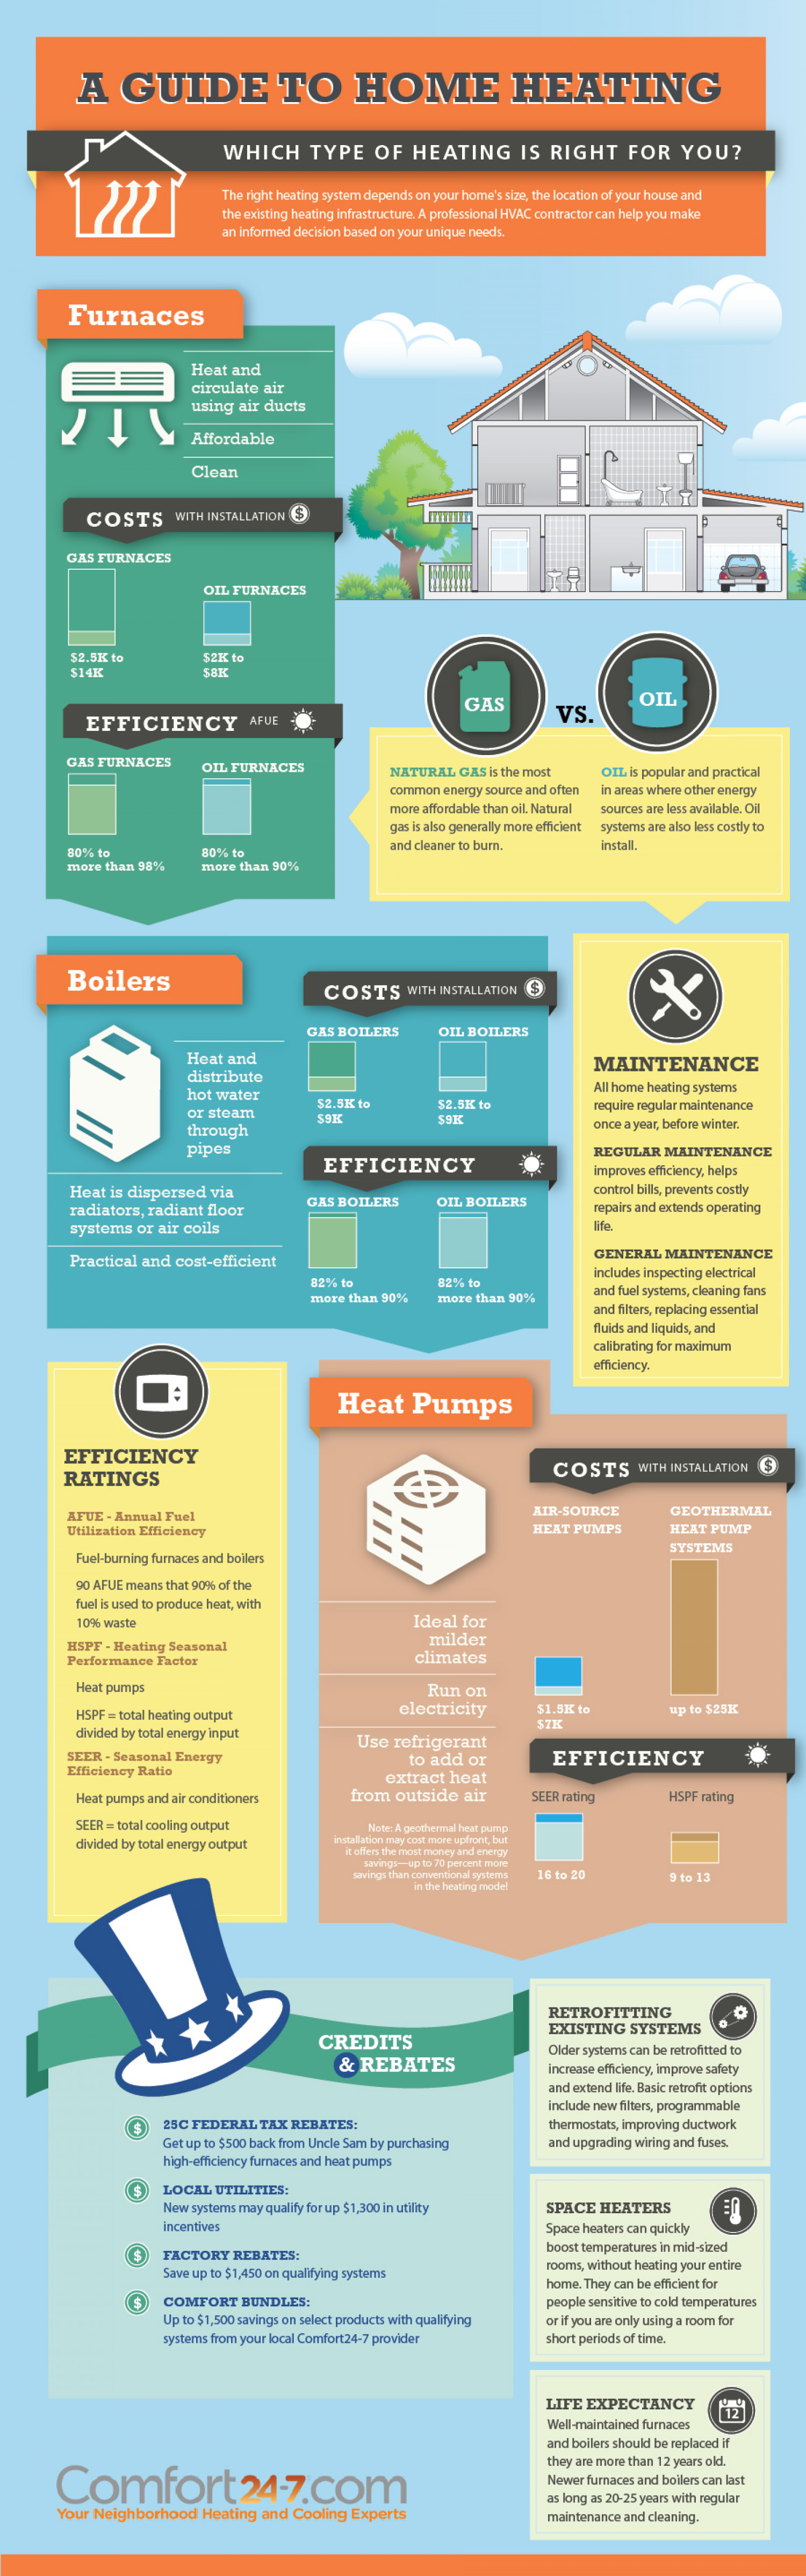 A Guide to Home Heating Infographic